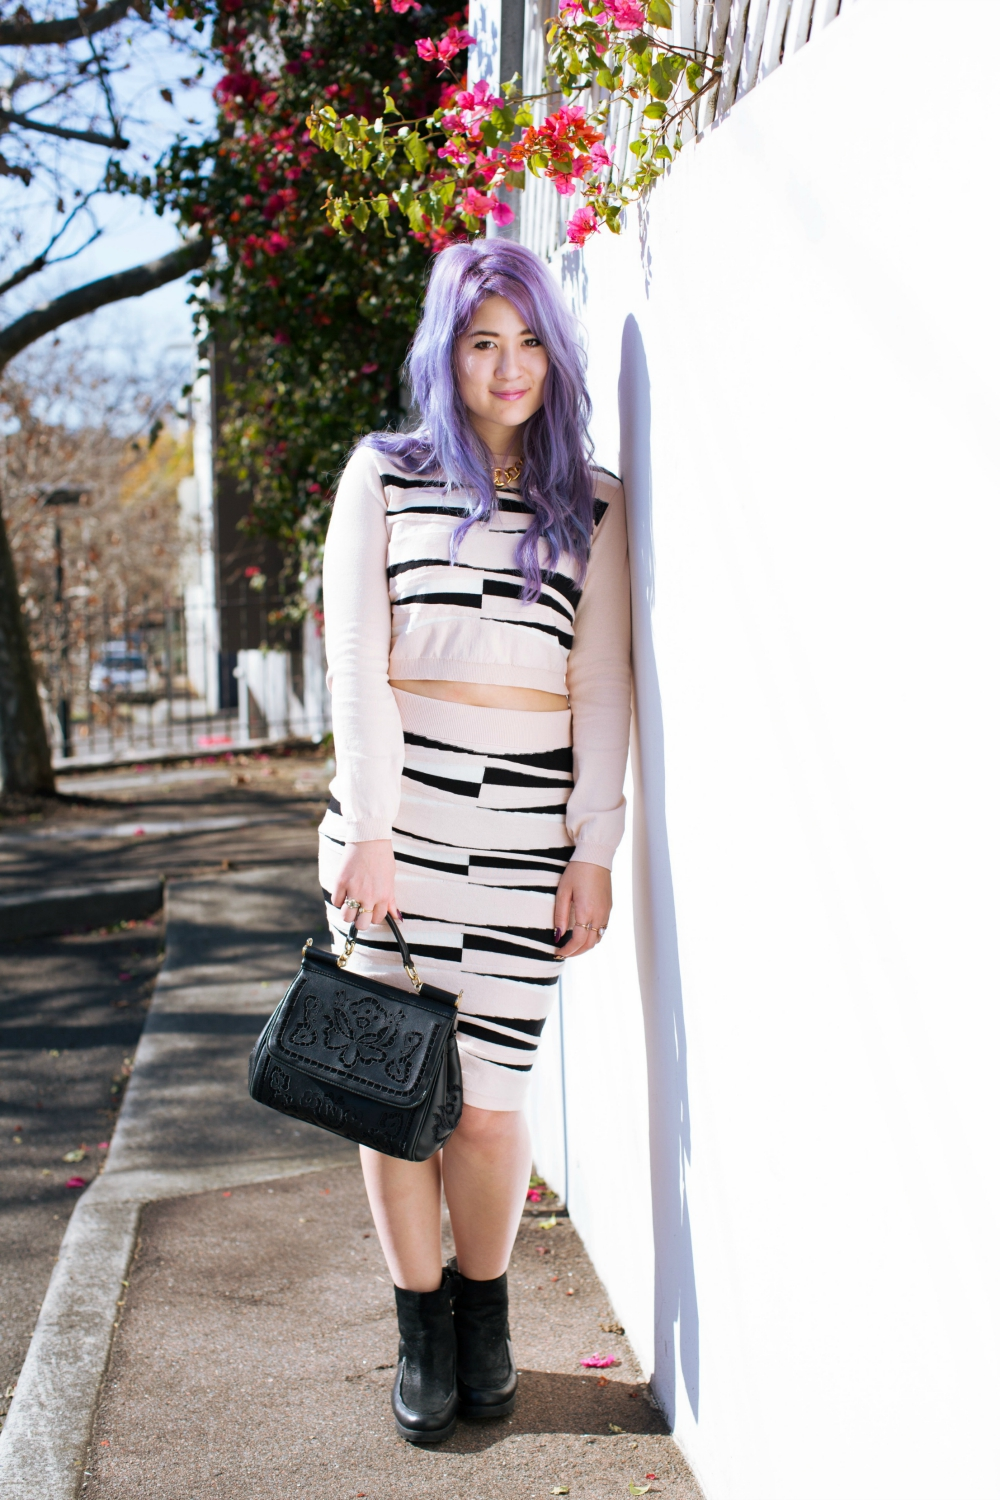 emi unicorn knit outfit pastel hair purple